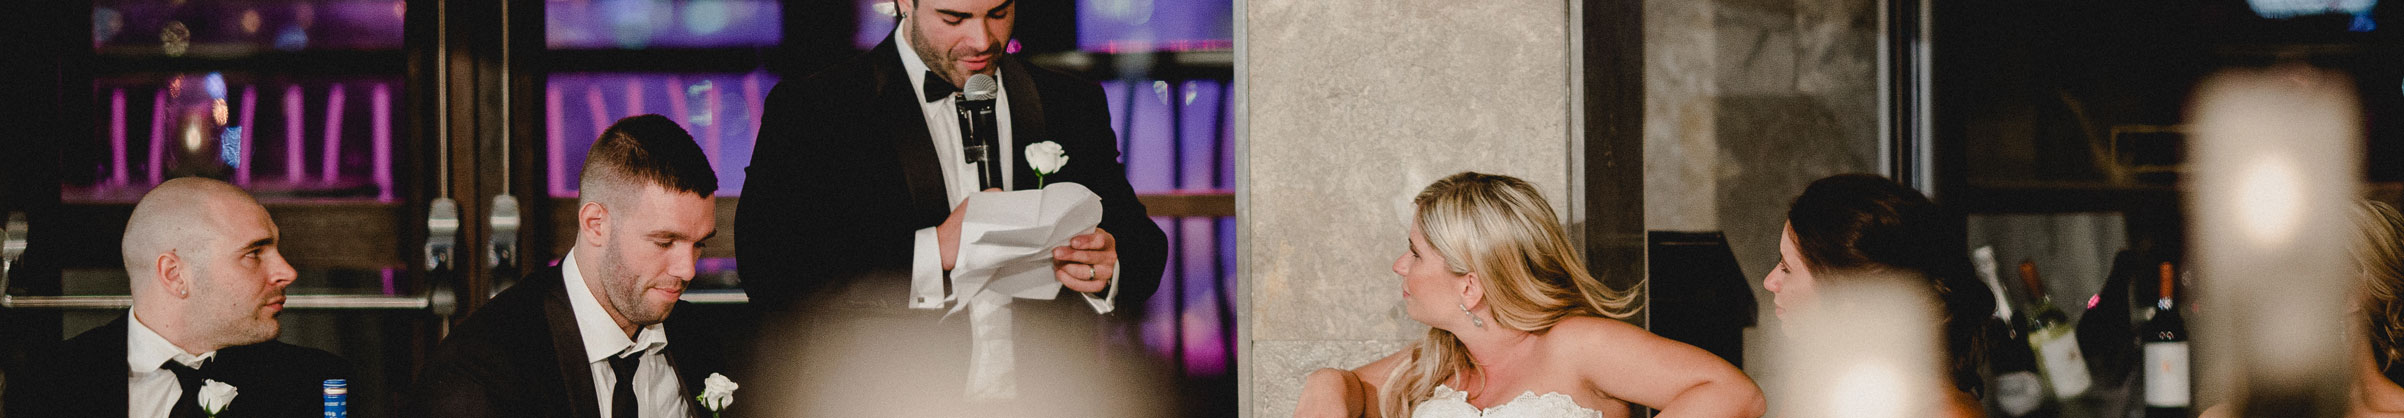 Do's and Don'ts of a Groom's Speech